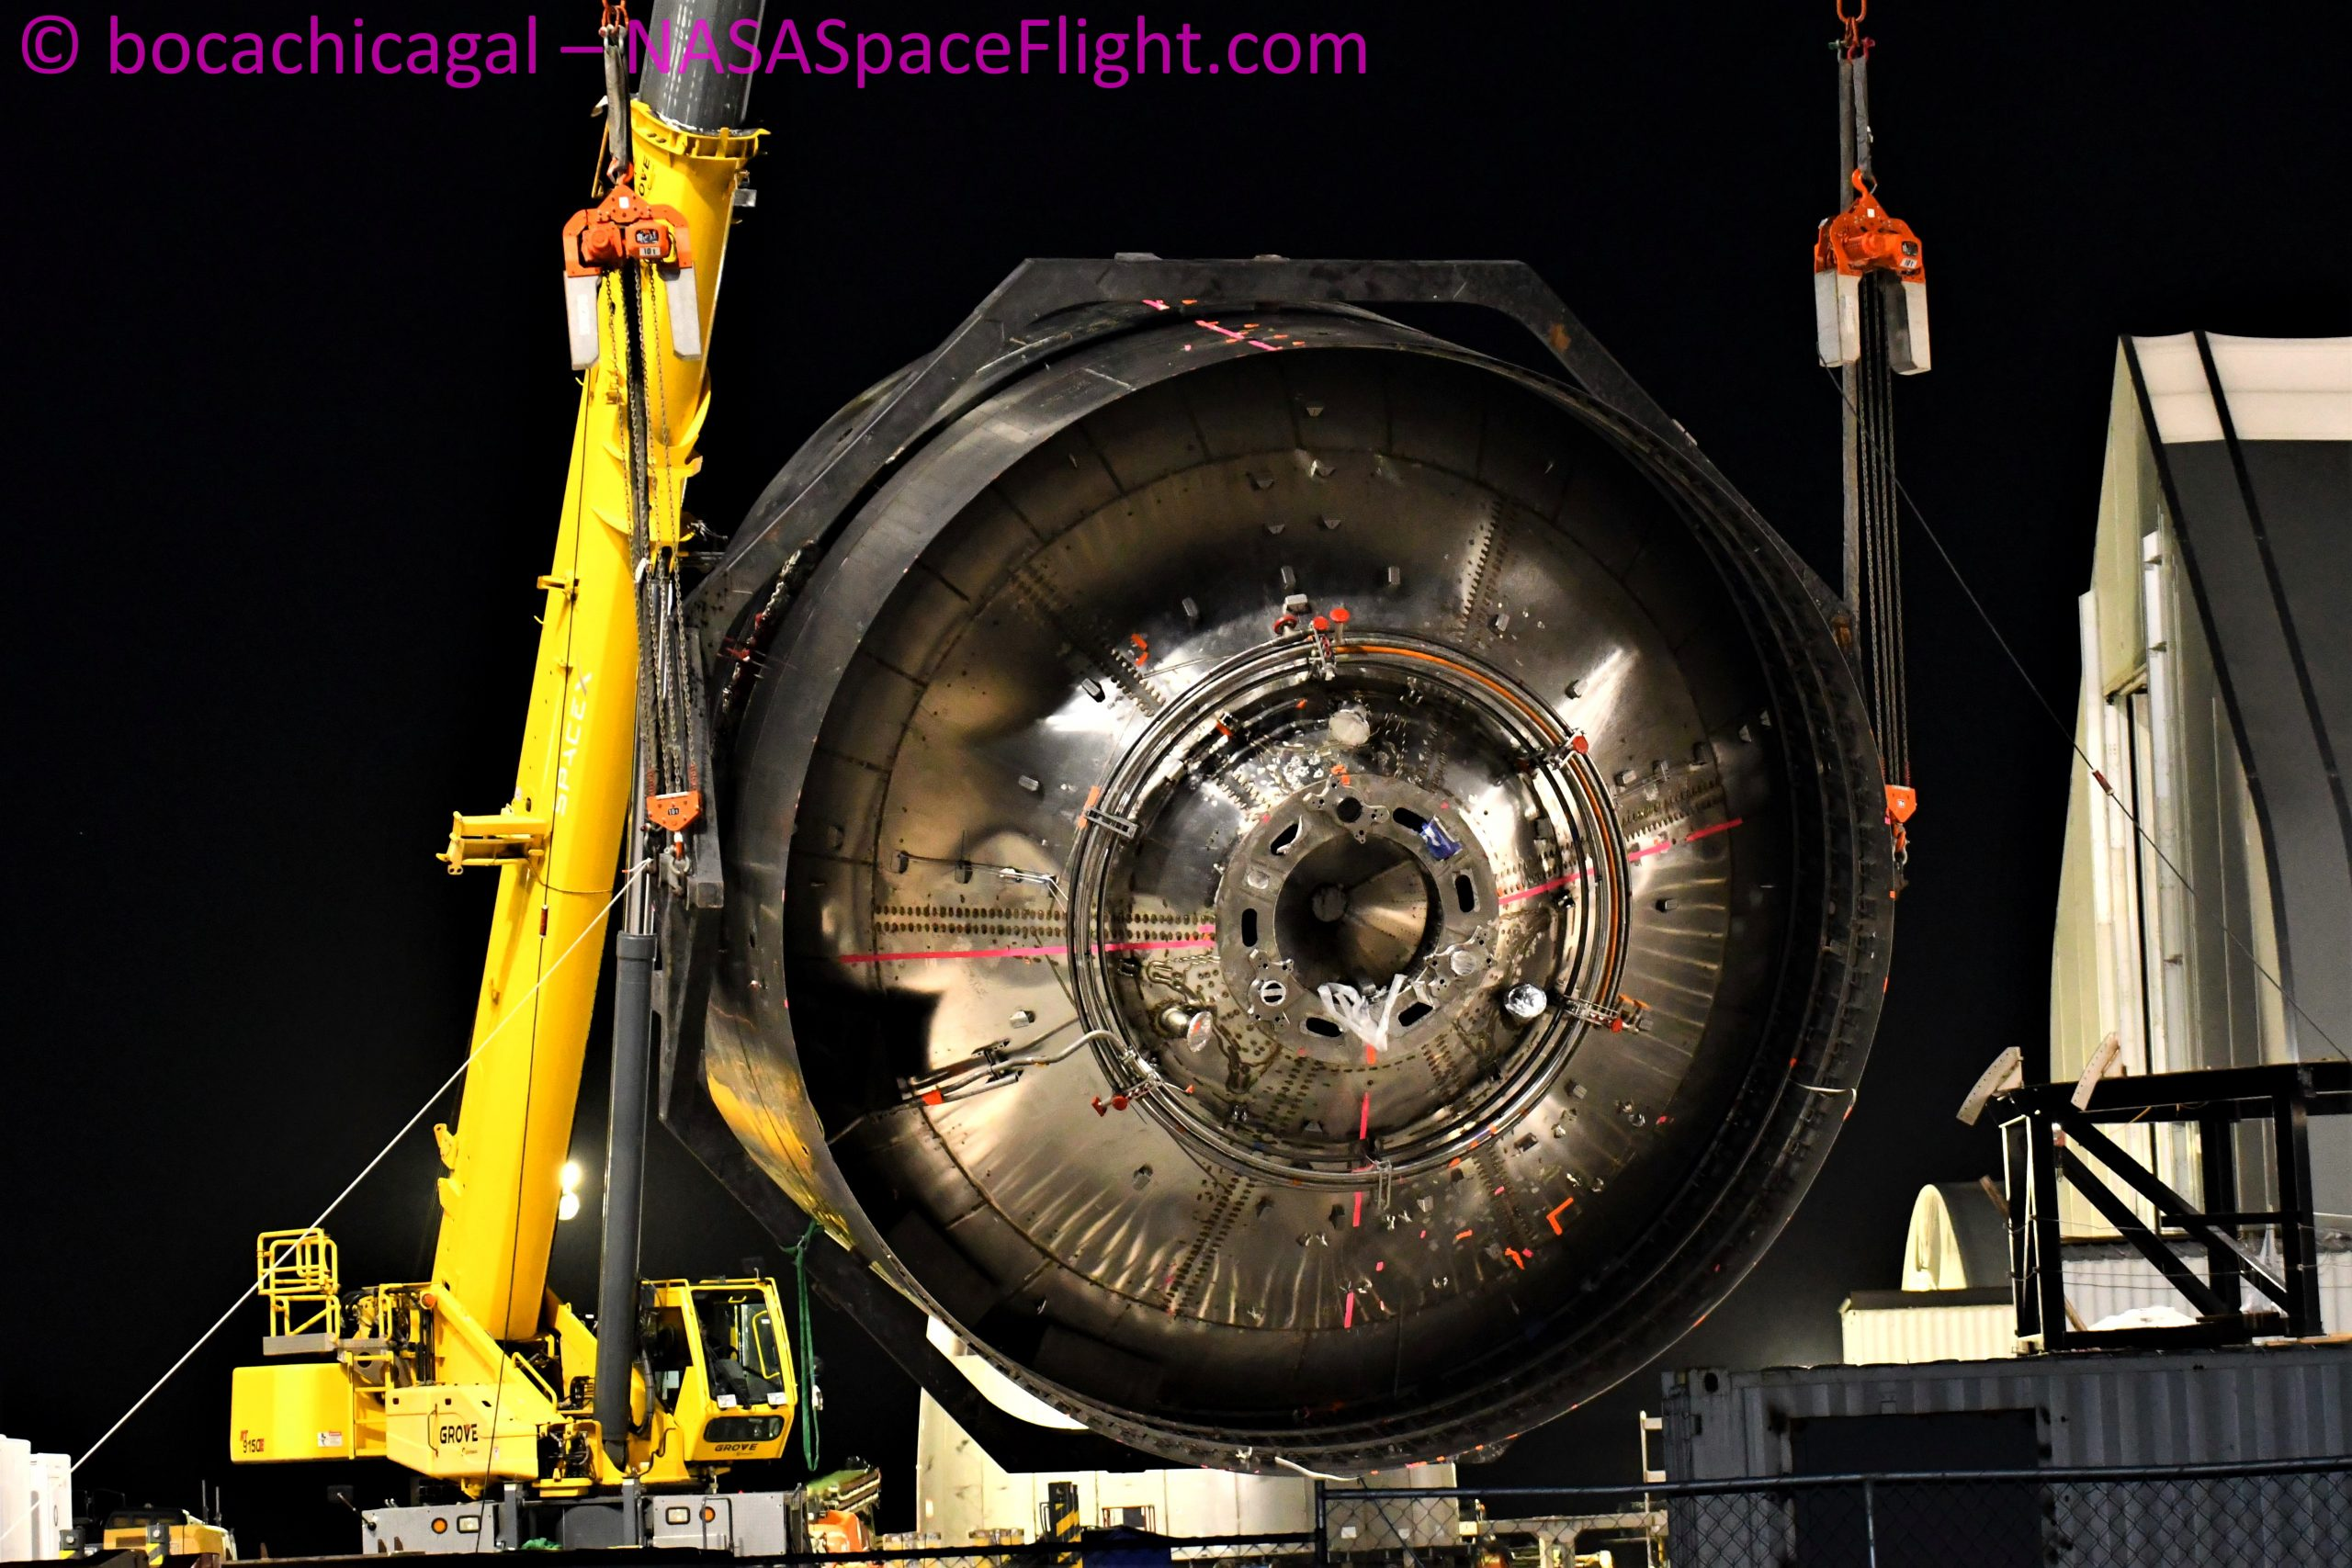 Starship Boca Chica 060320 (NASASpaceflight – bocachicagal) SN6 engine section flip 4